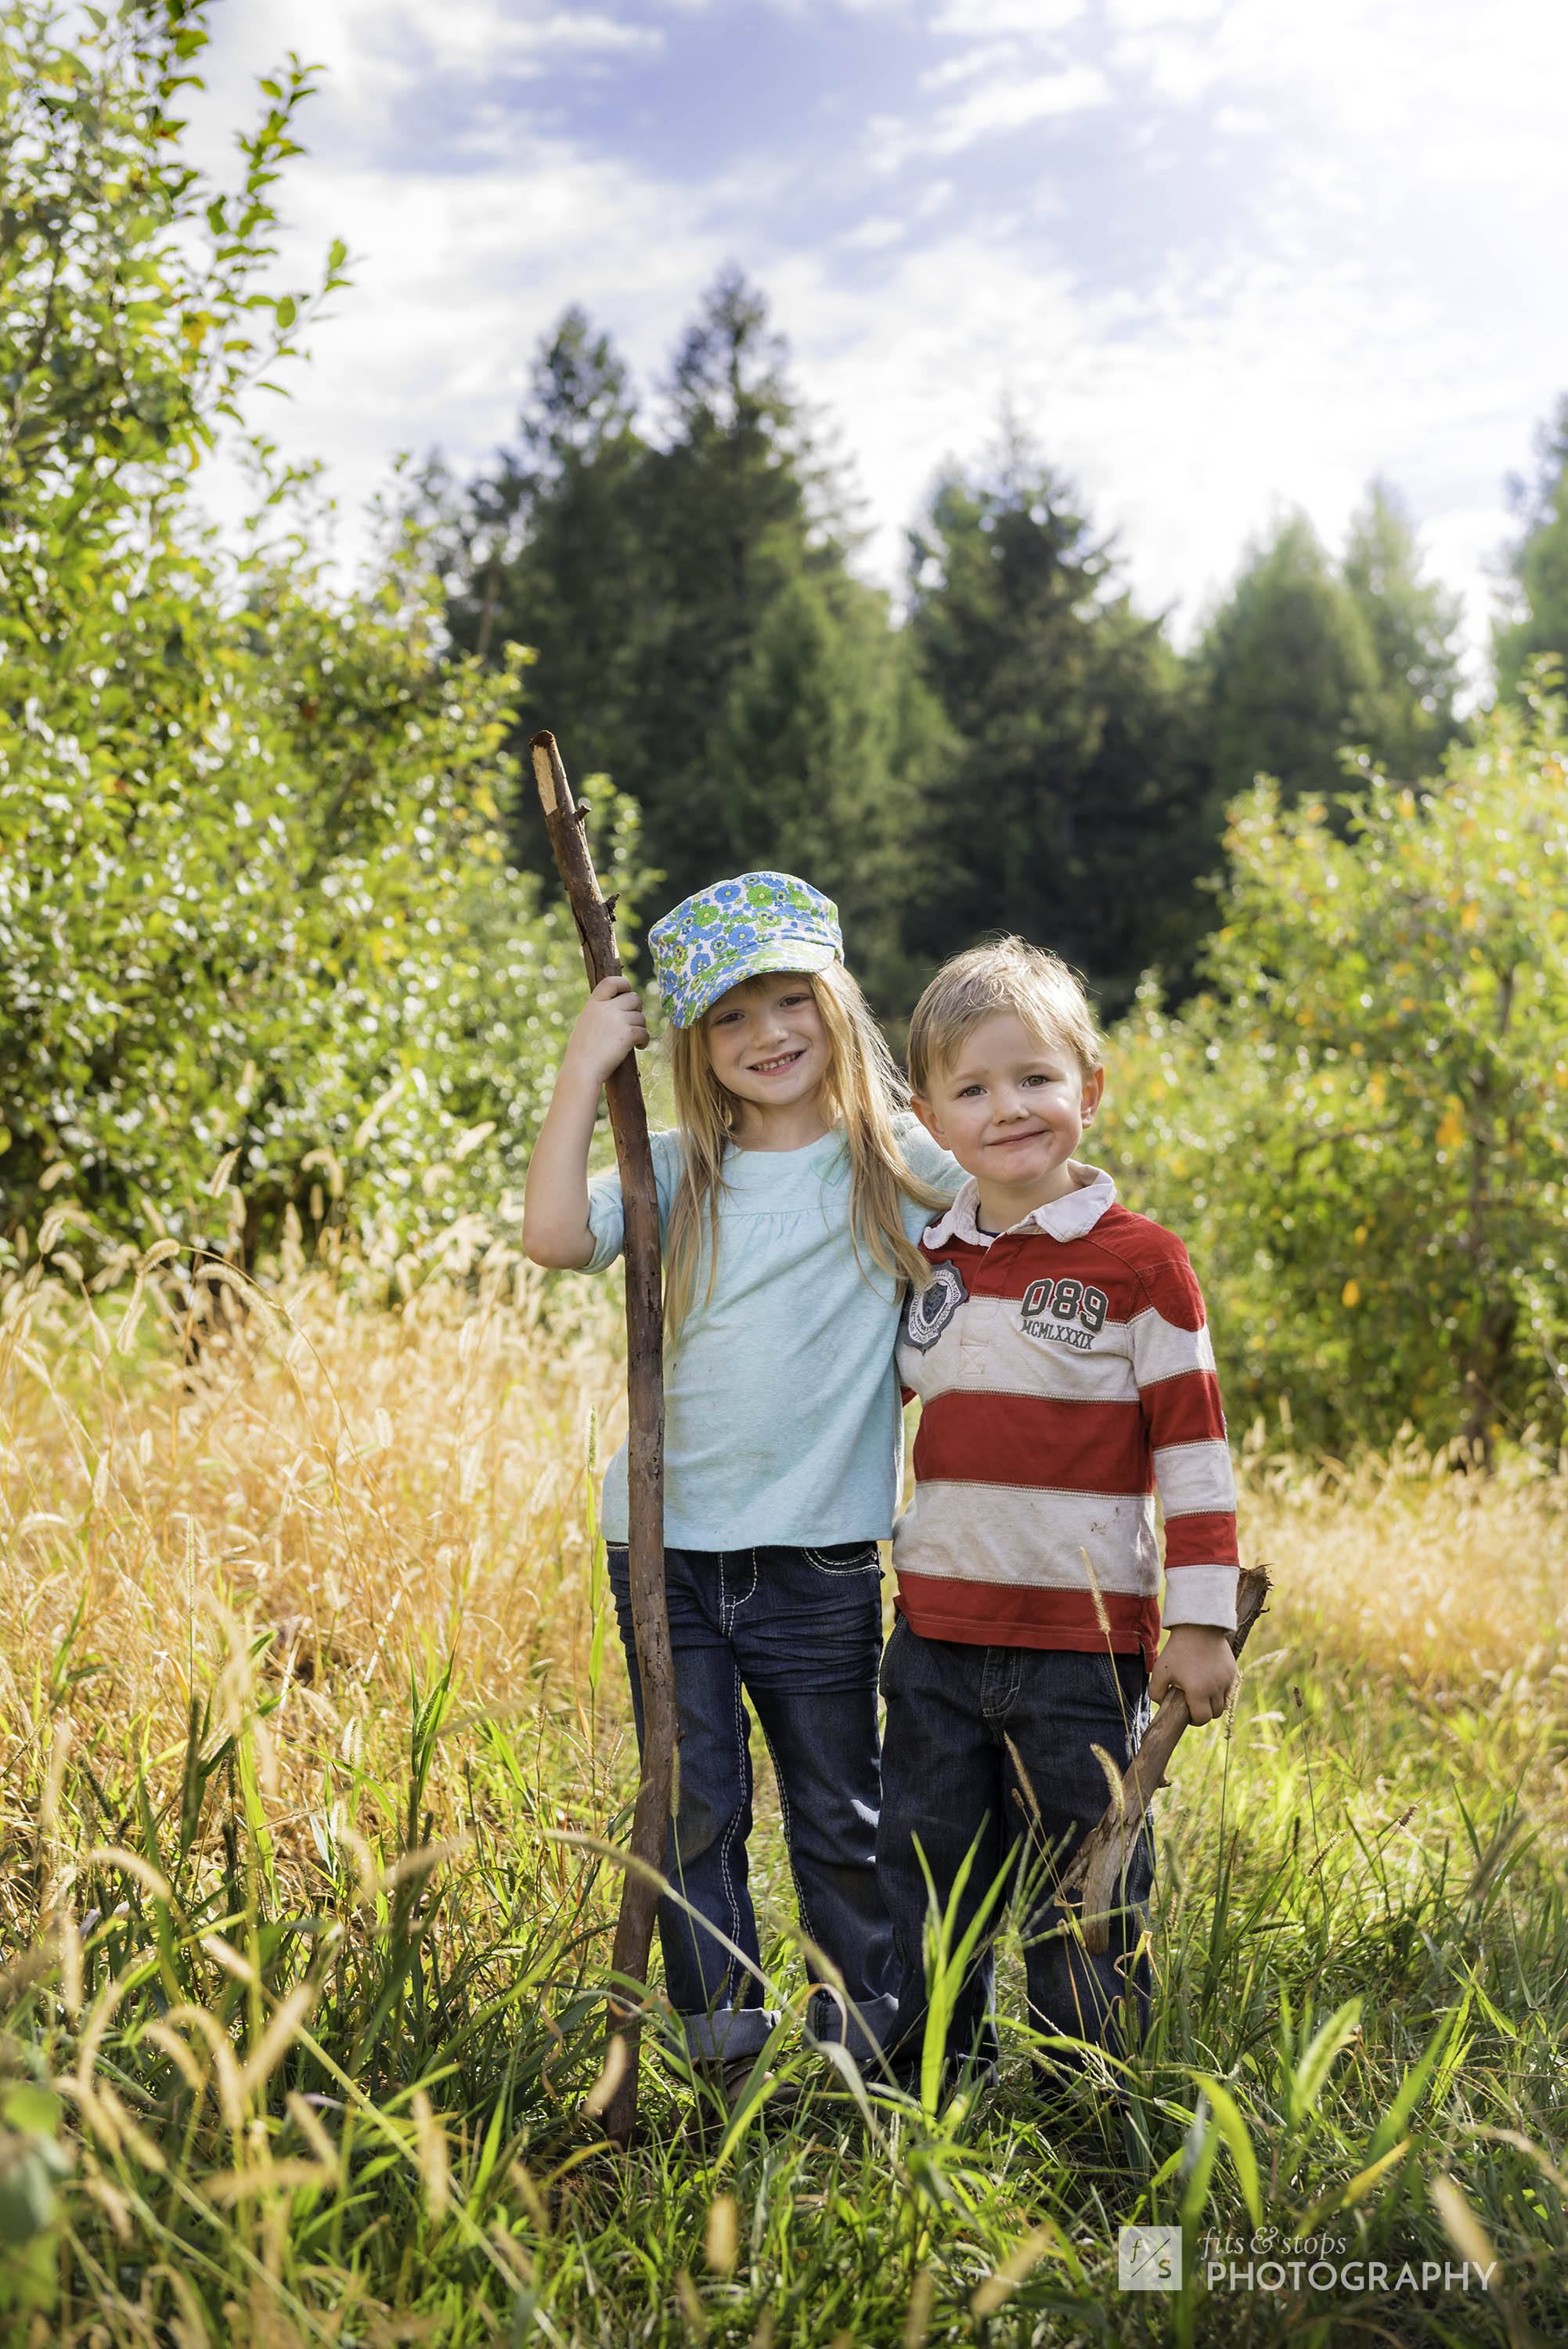 Two young children stand in between rows of apple trees at an orchard in Apple Hill, California.